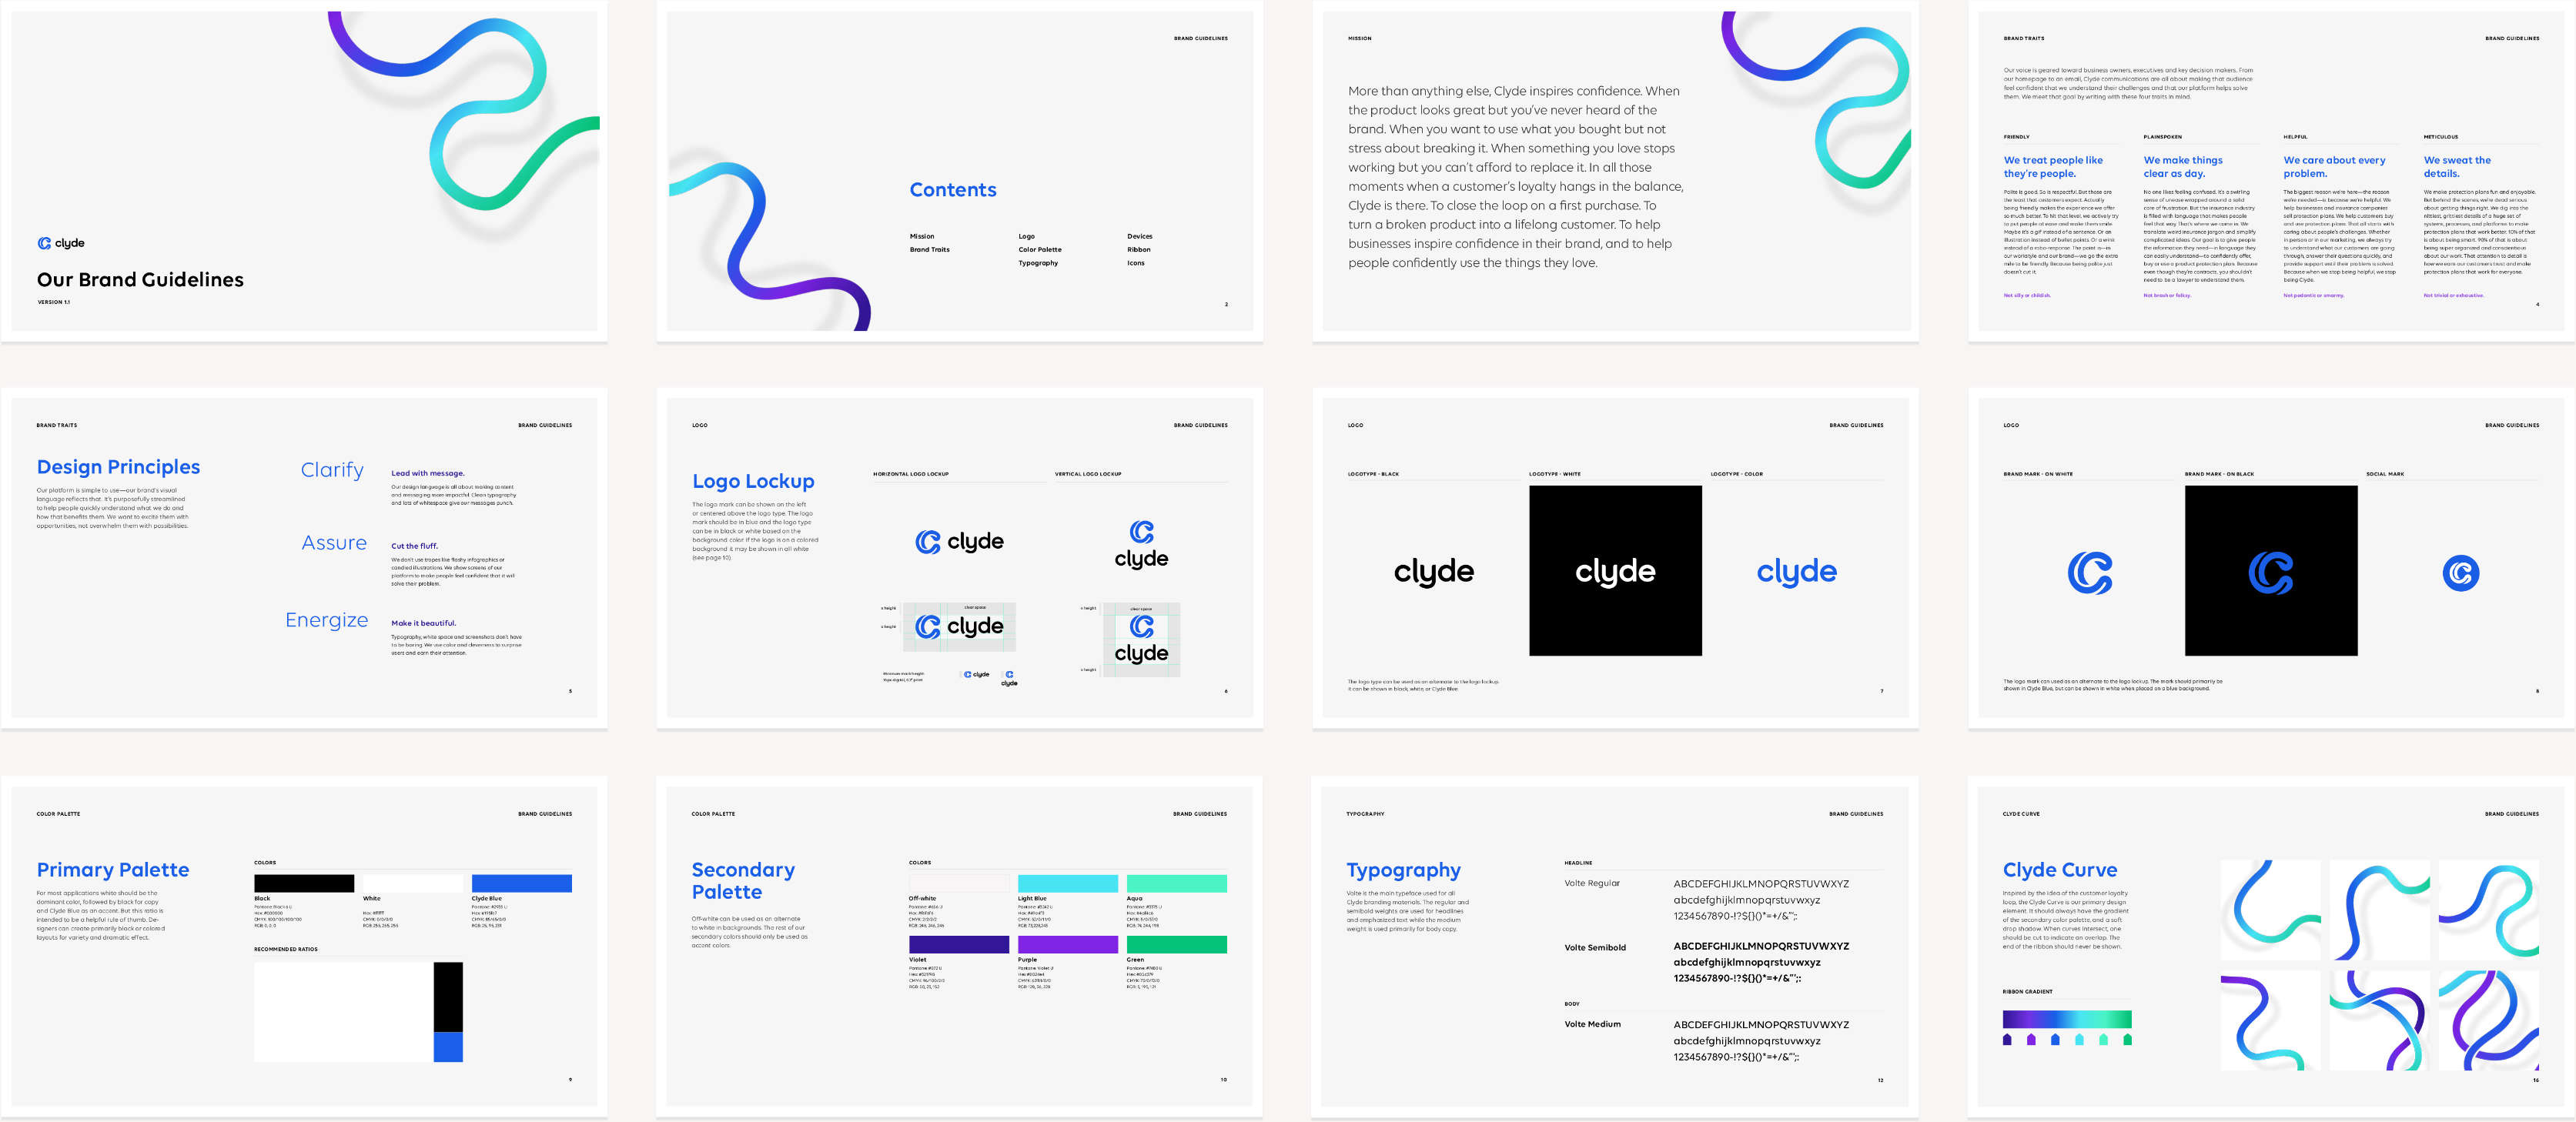 Spread showing pages from Clyde brand guidelines document.